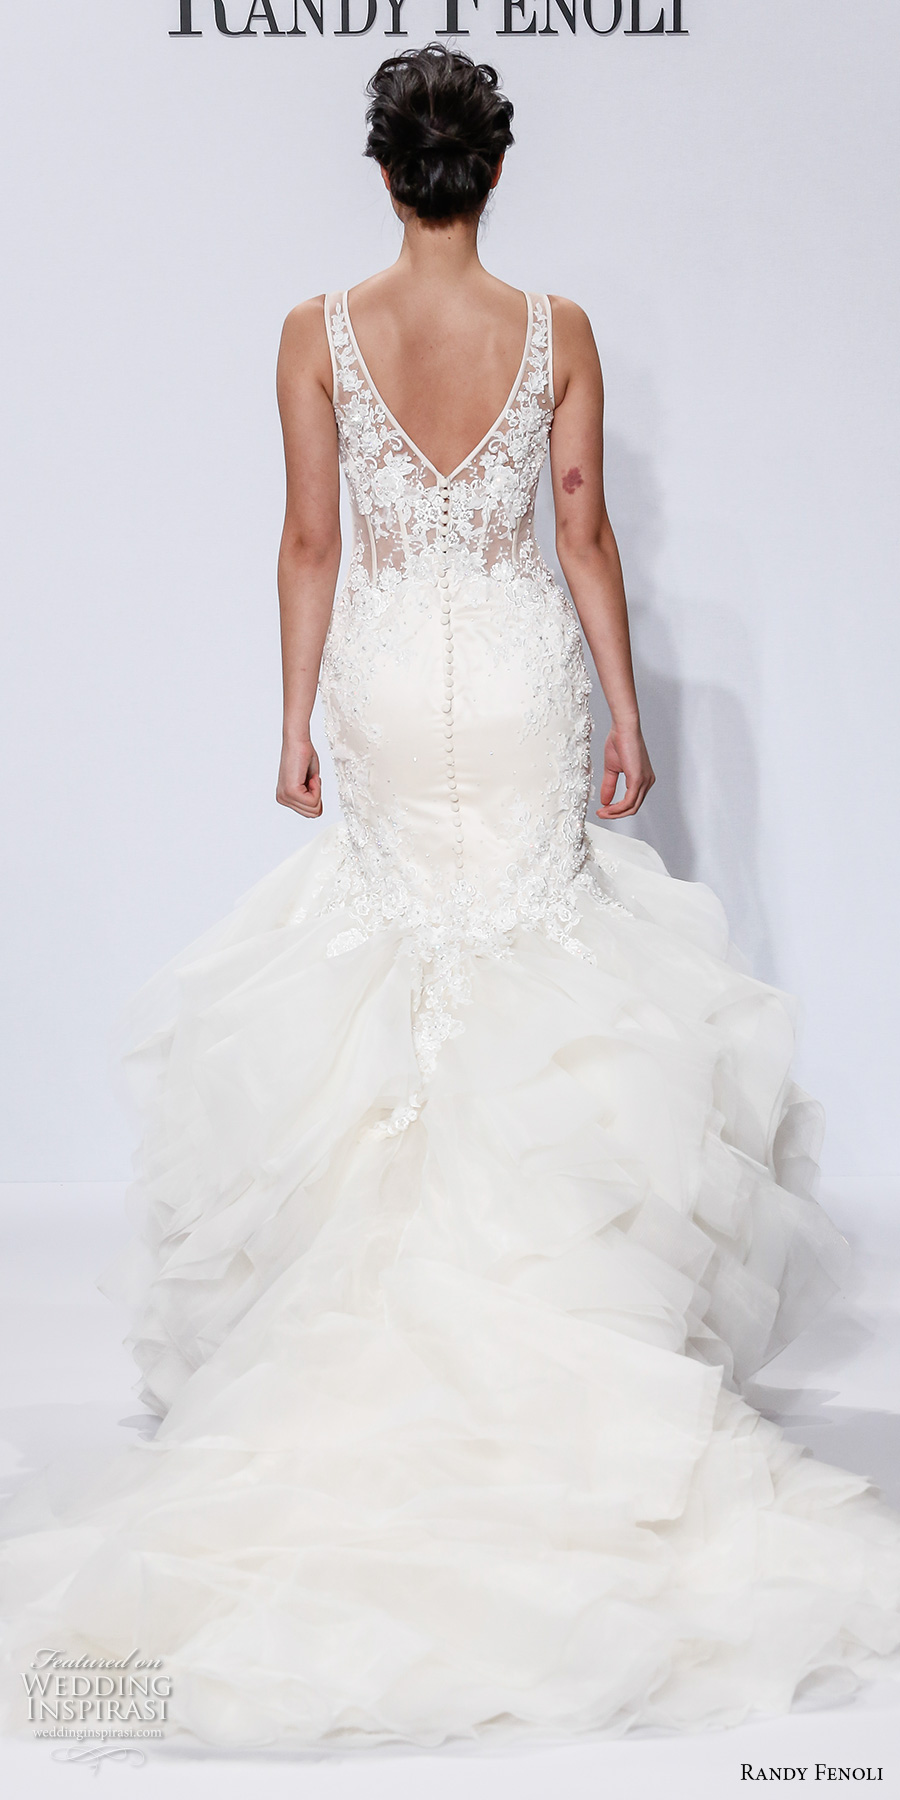 randy fenoli spring 2018 bridal sleeveless v neck heavily embellished bodice ruffled skirt elegant glamorous mermaid wedding dress open v back chapel train (24) bv